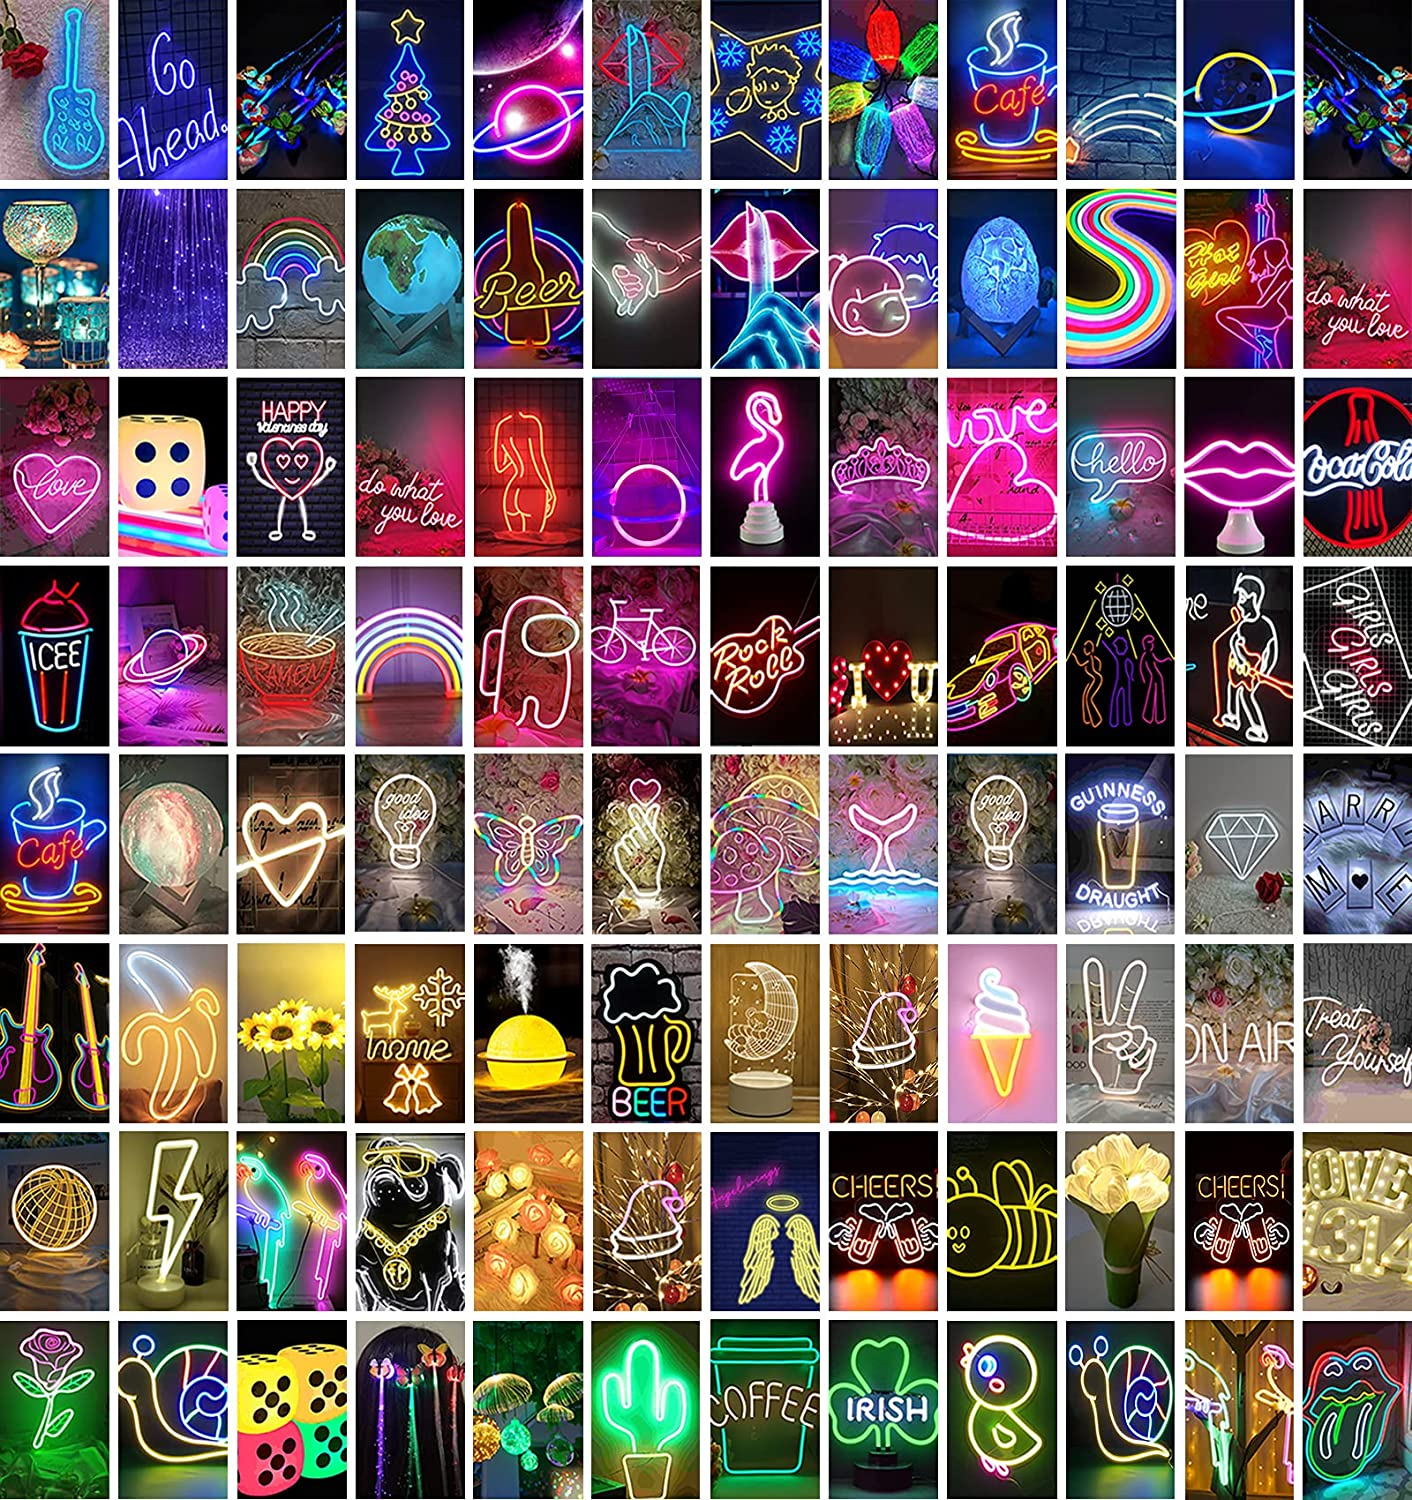 Wall Collage Kit Room Decor for Bedroom Aesthetic Pictures,100 Set 4x6 inch,Neon Posters for Room Aesthetic, Dorm Photo Wall Decor for Teen Girls and Boys